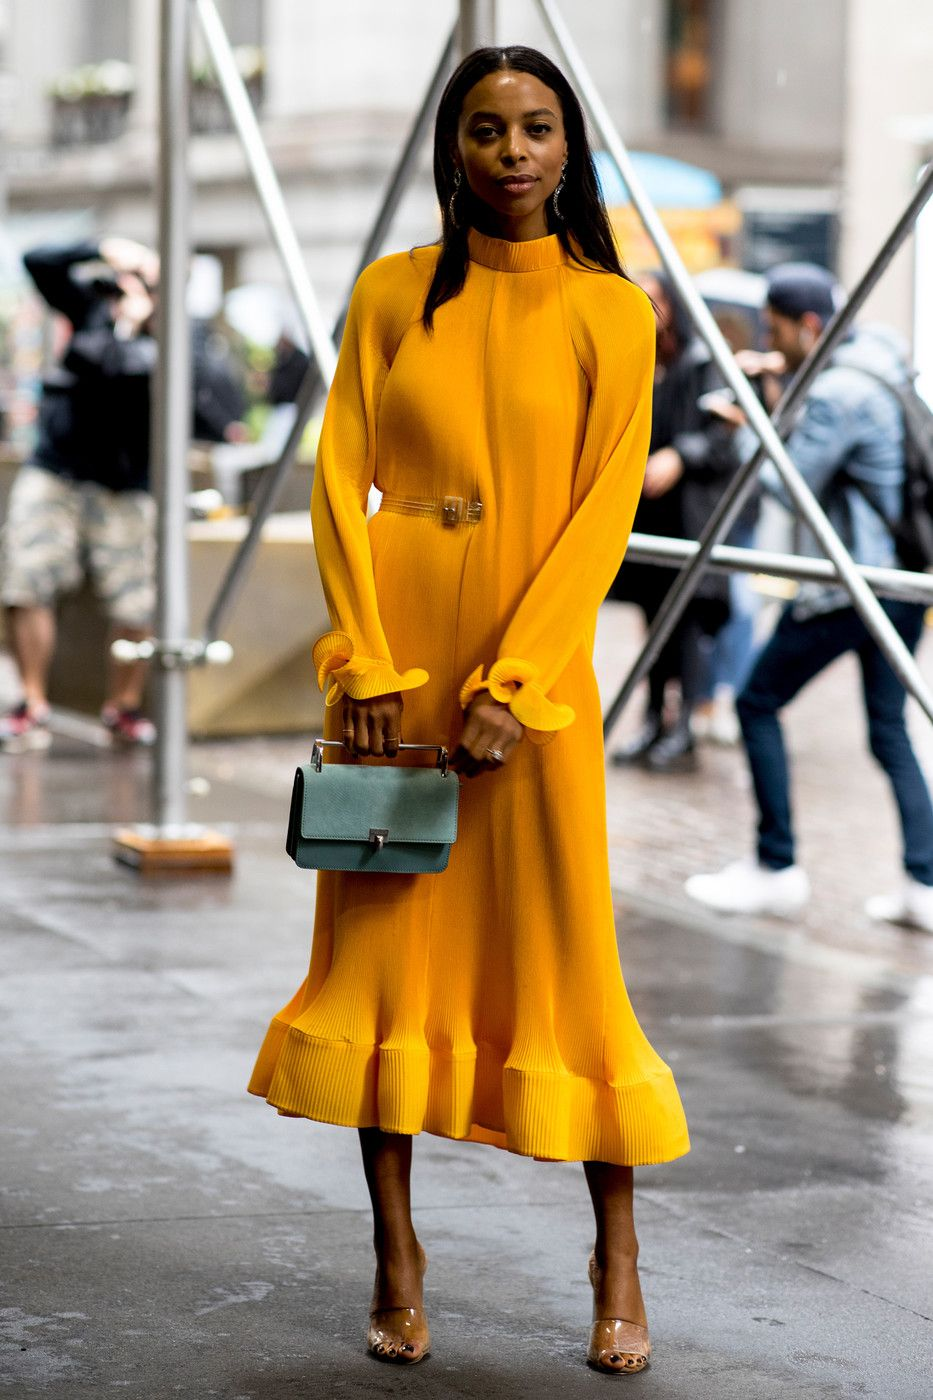 e06e4cde7a4a Attendees at New York Fashion Week Spring 2019 - Street Fashion